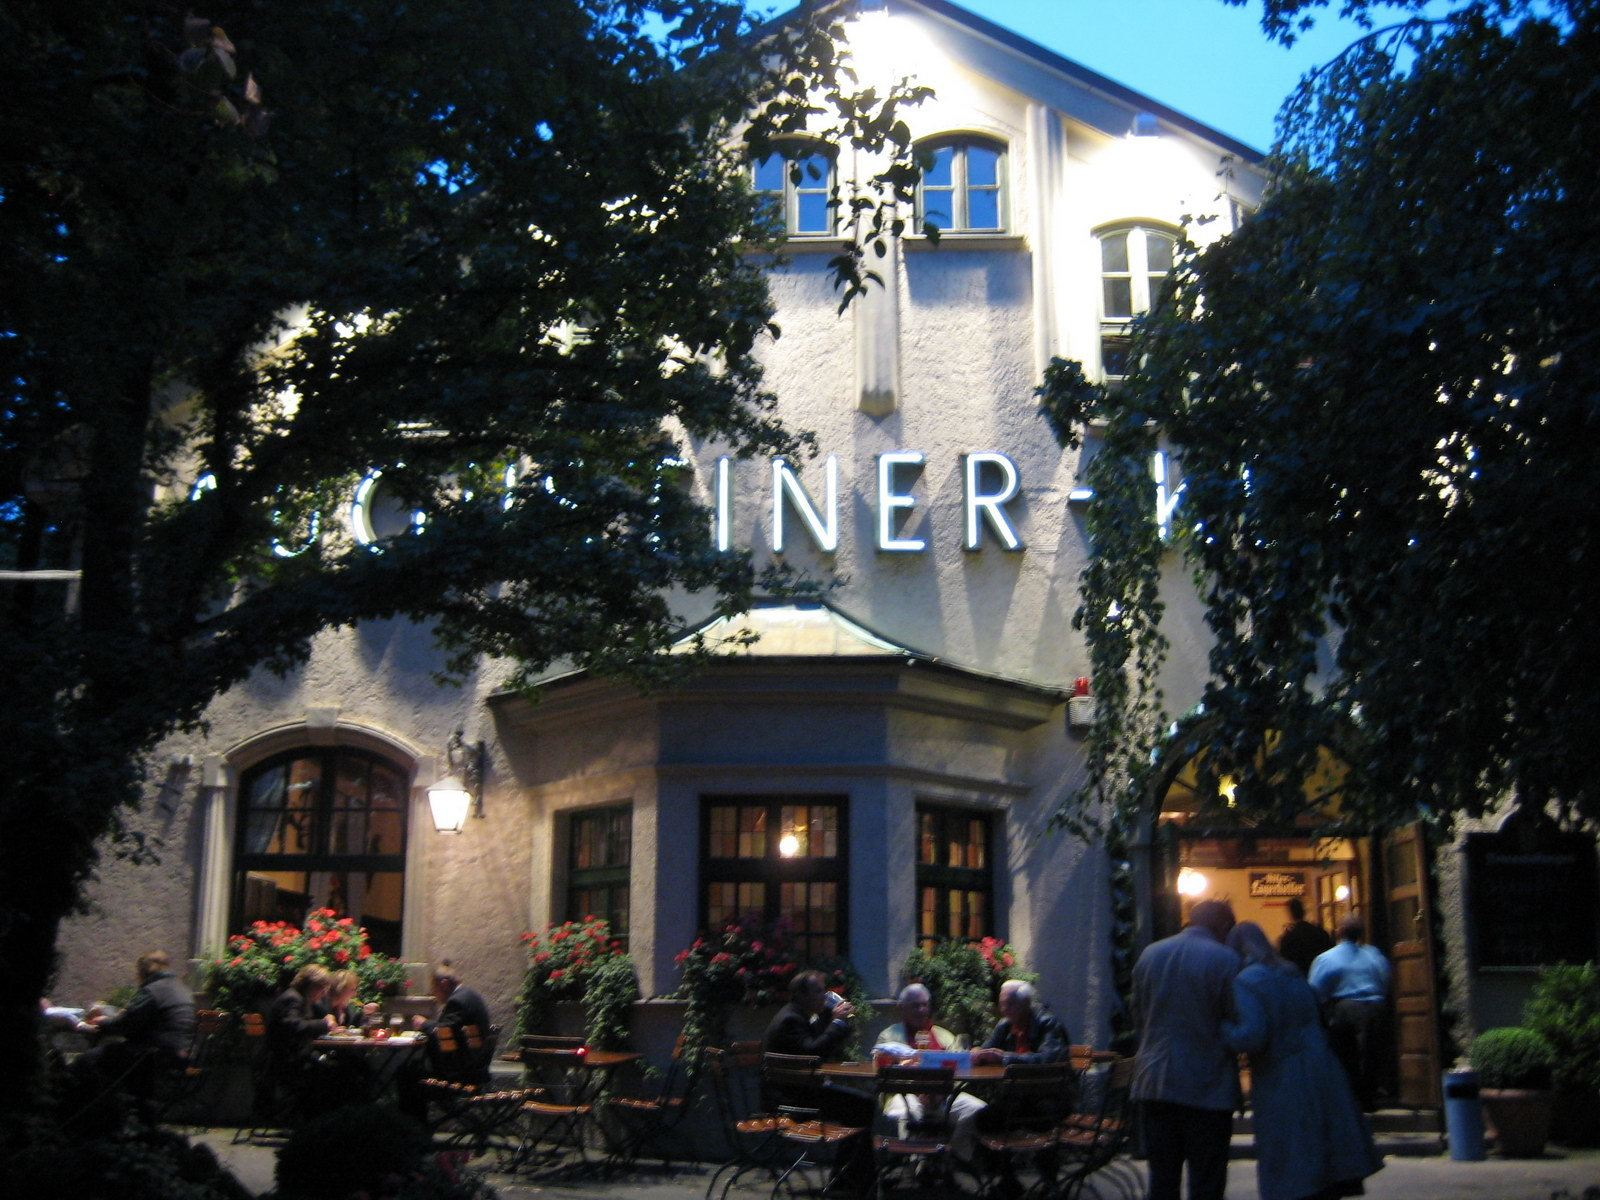 Augustiner Keller Beer-hall and Garden